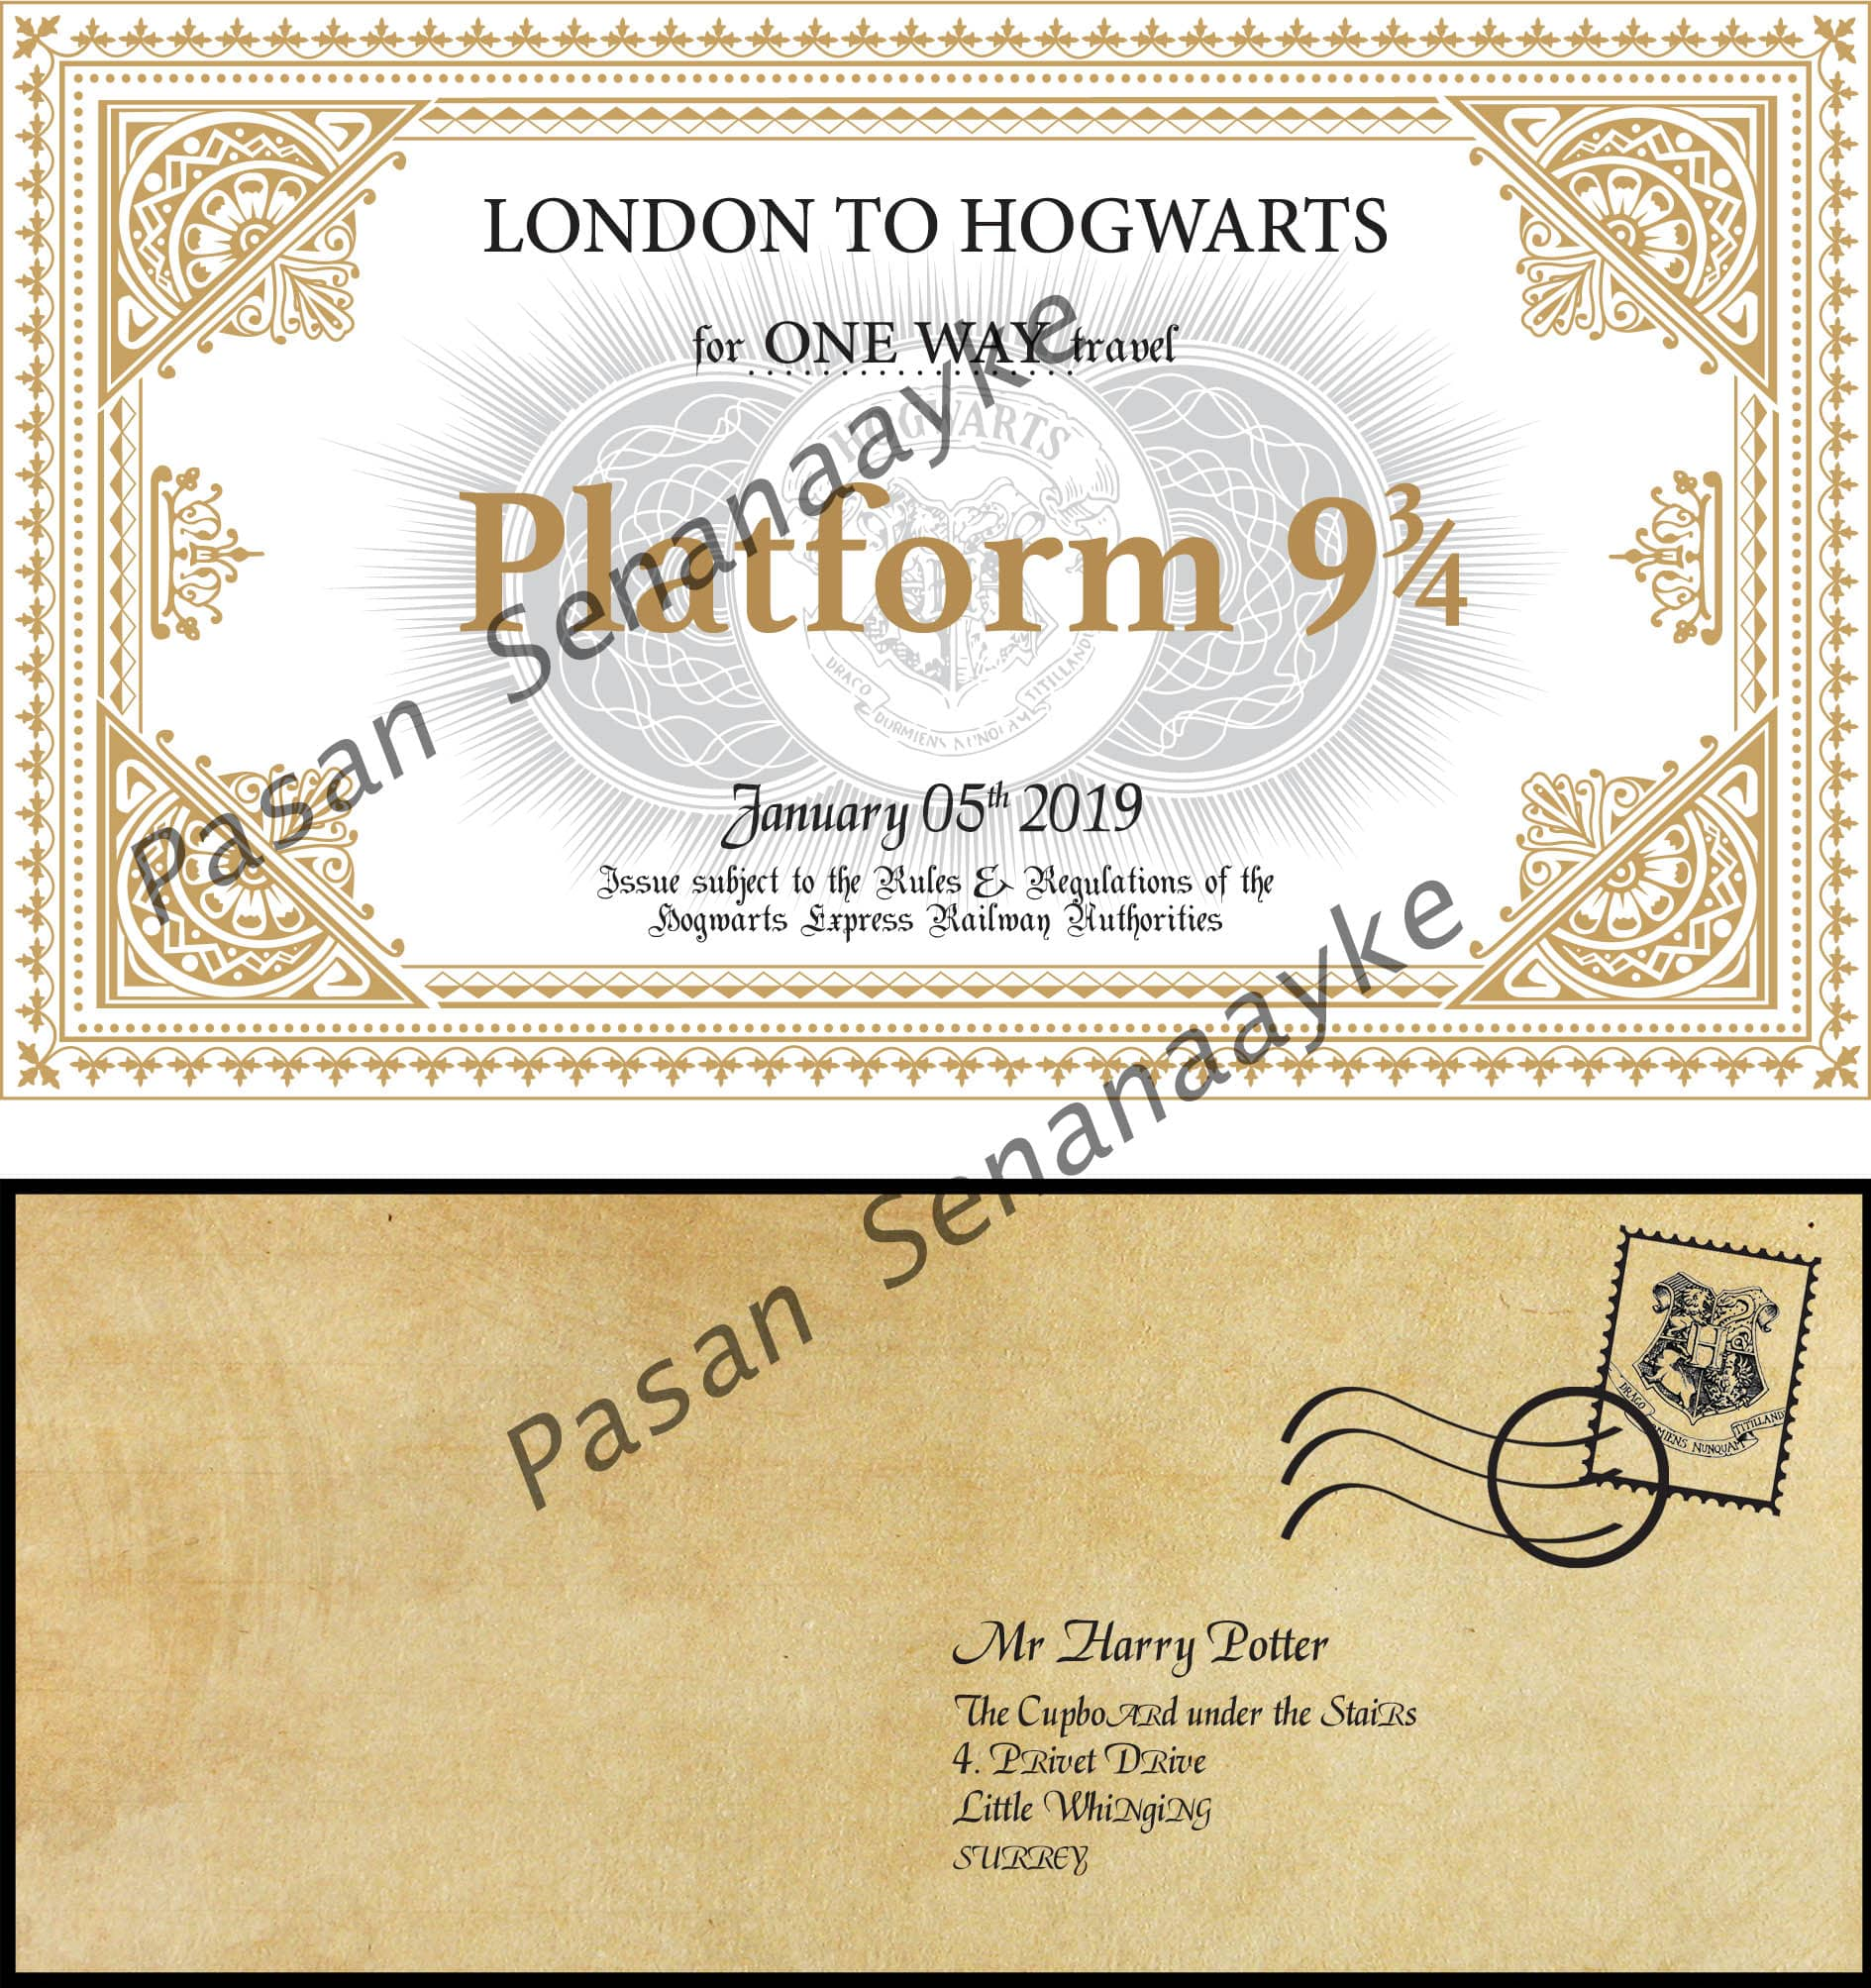 Harry Potter Personalized Hogwarts acceptance letter, Knight bus ticket and etc. For everyone